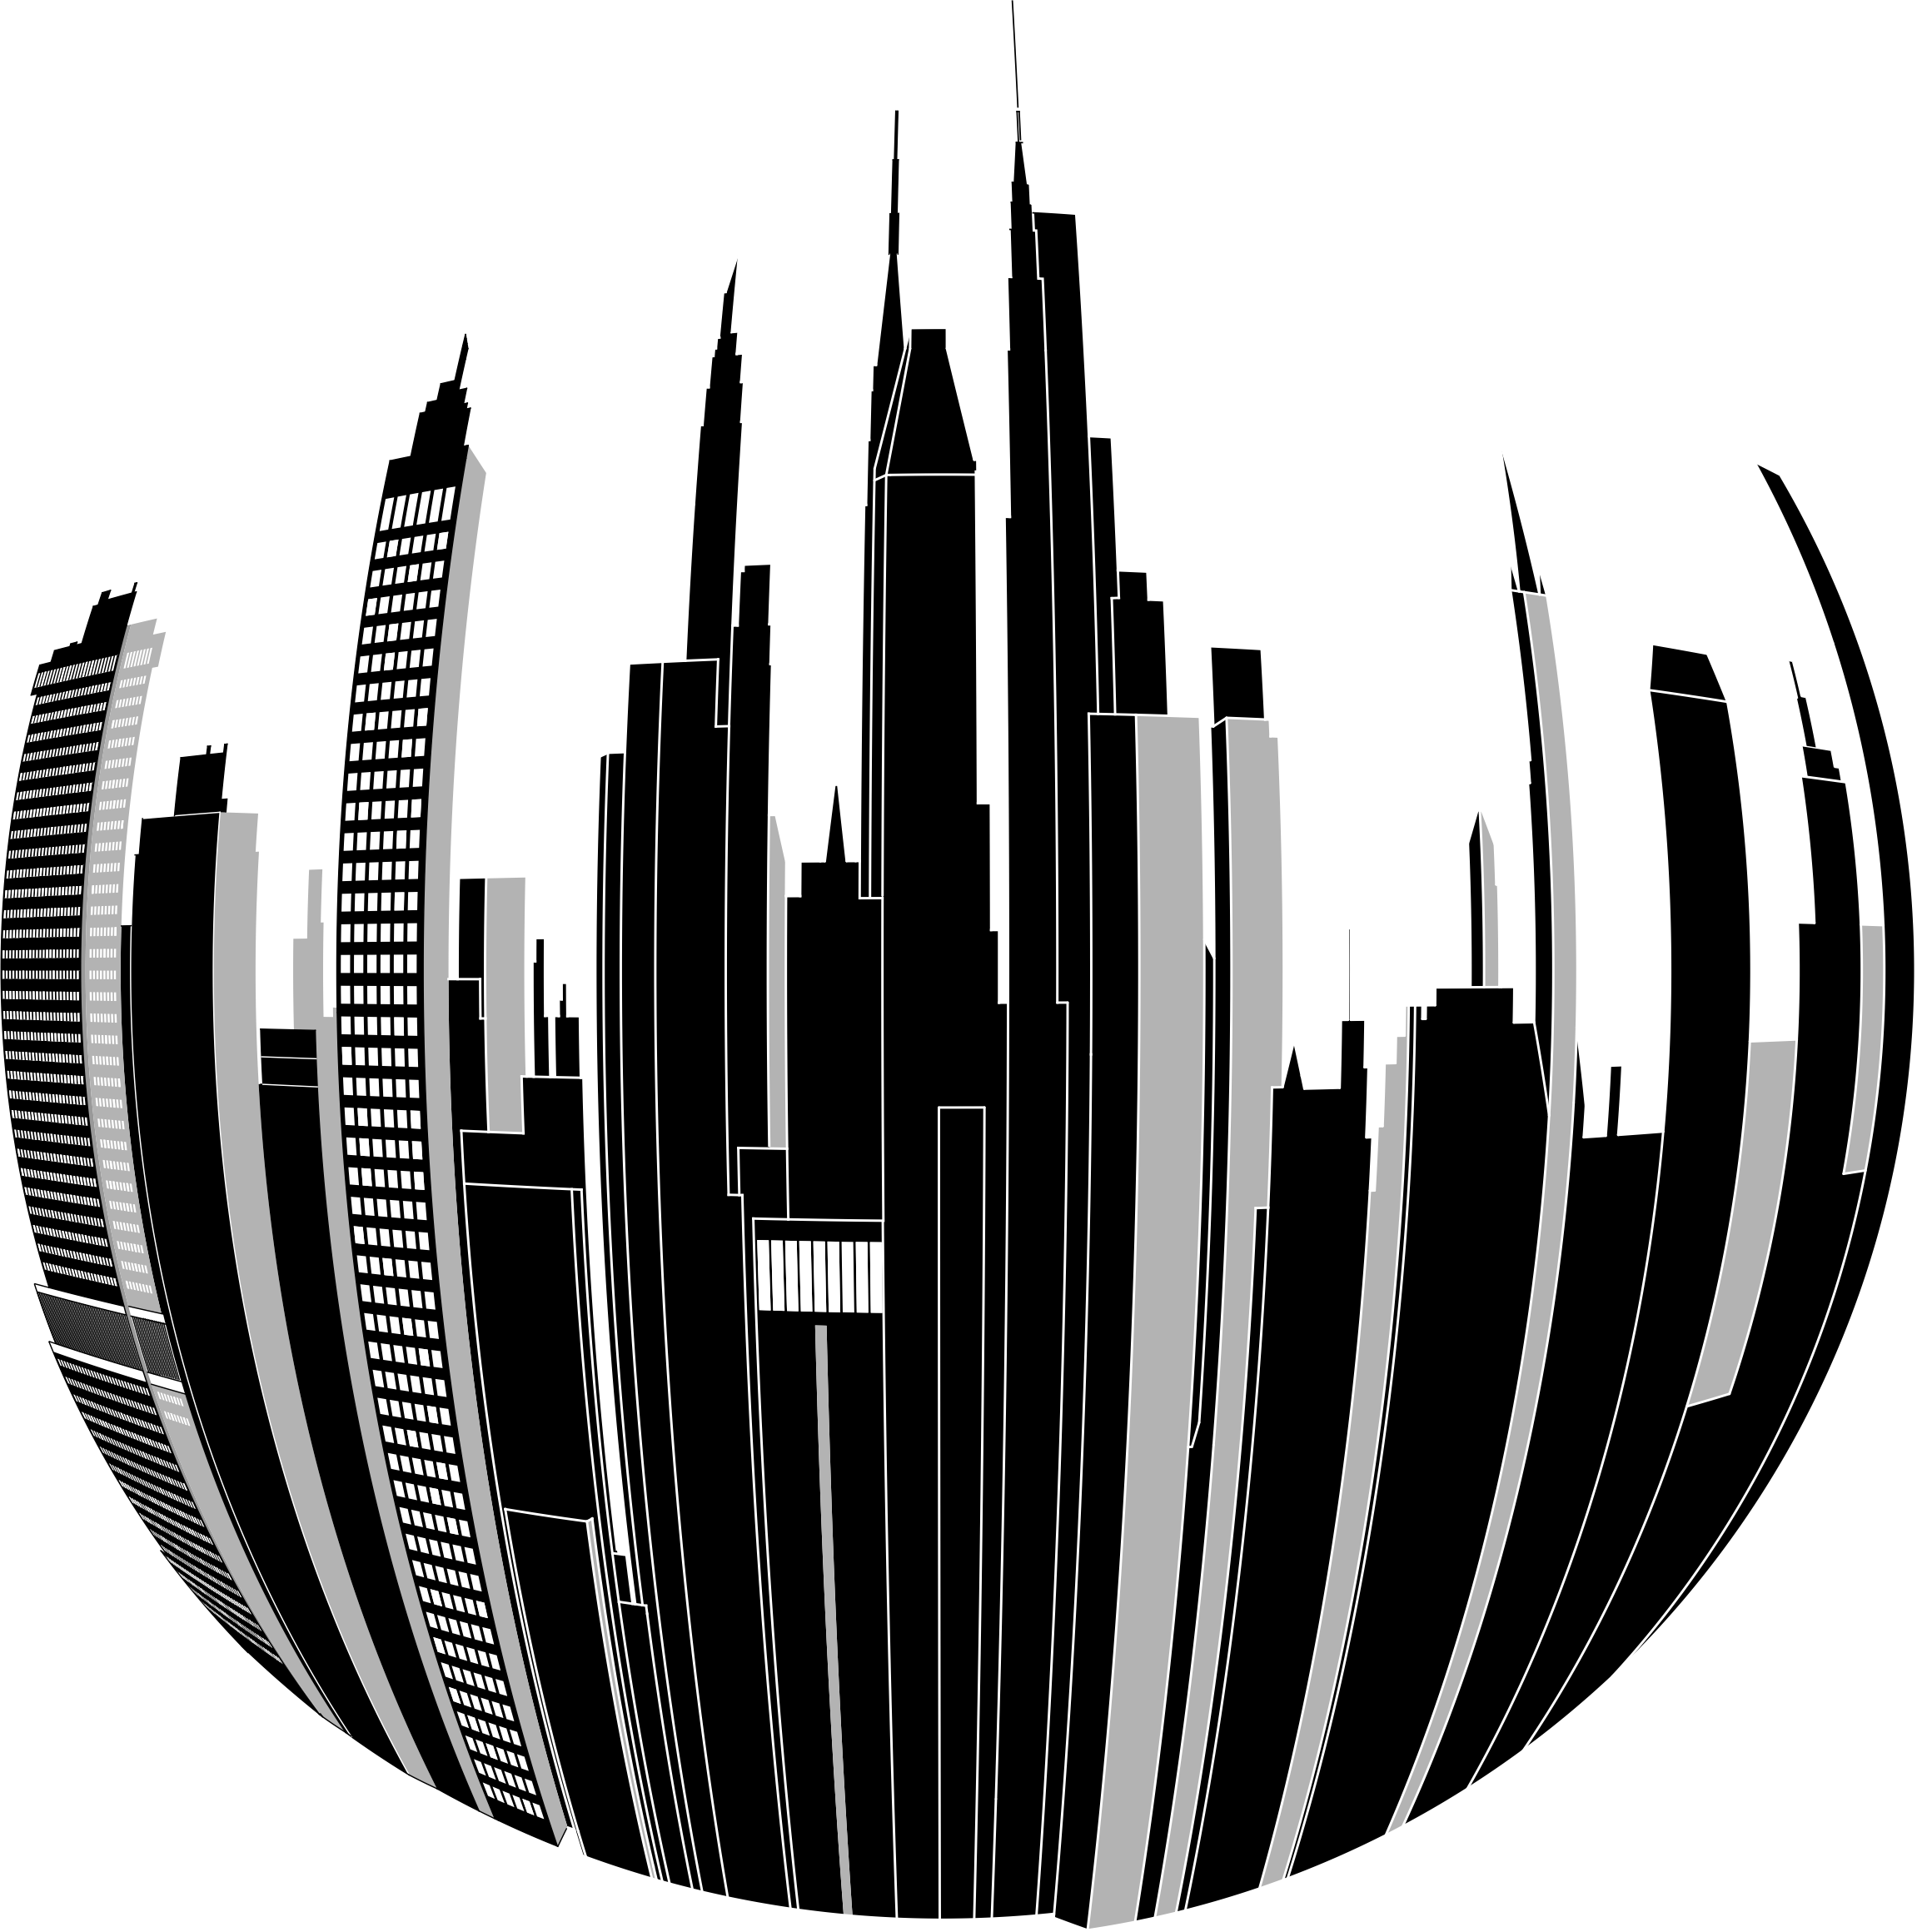 image free stock Distorted skyline image png. Cityscape clipart big city.